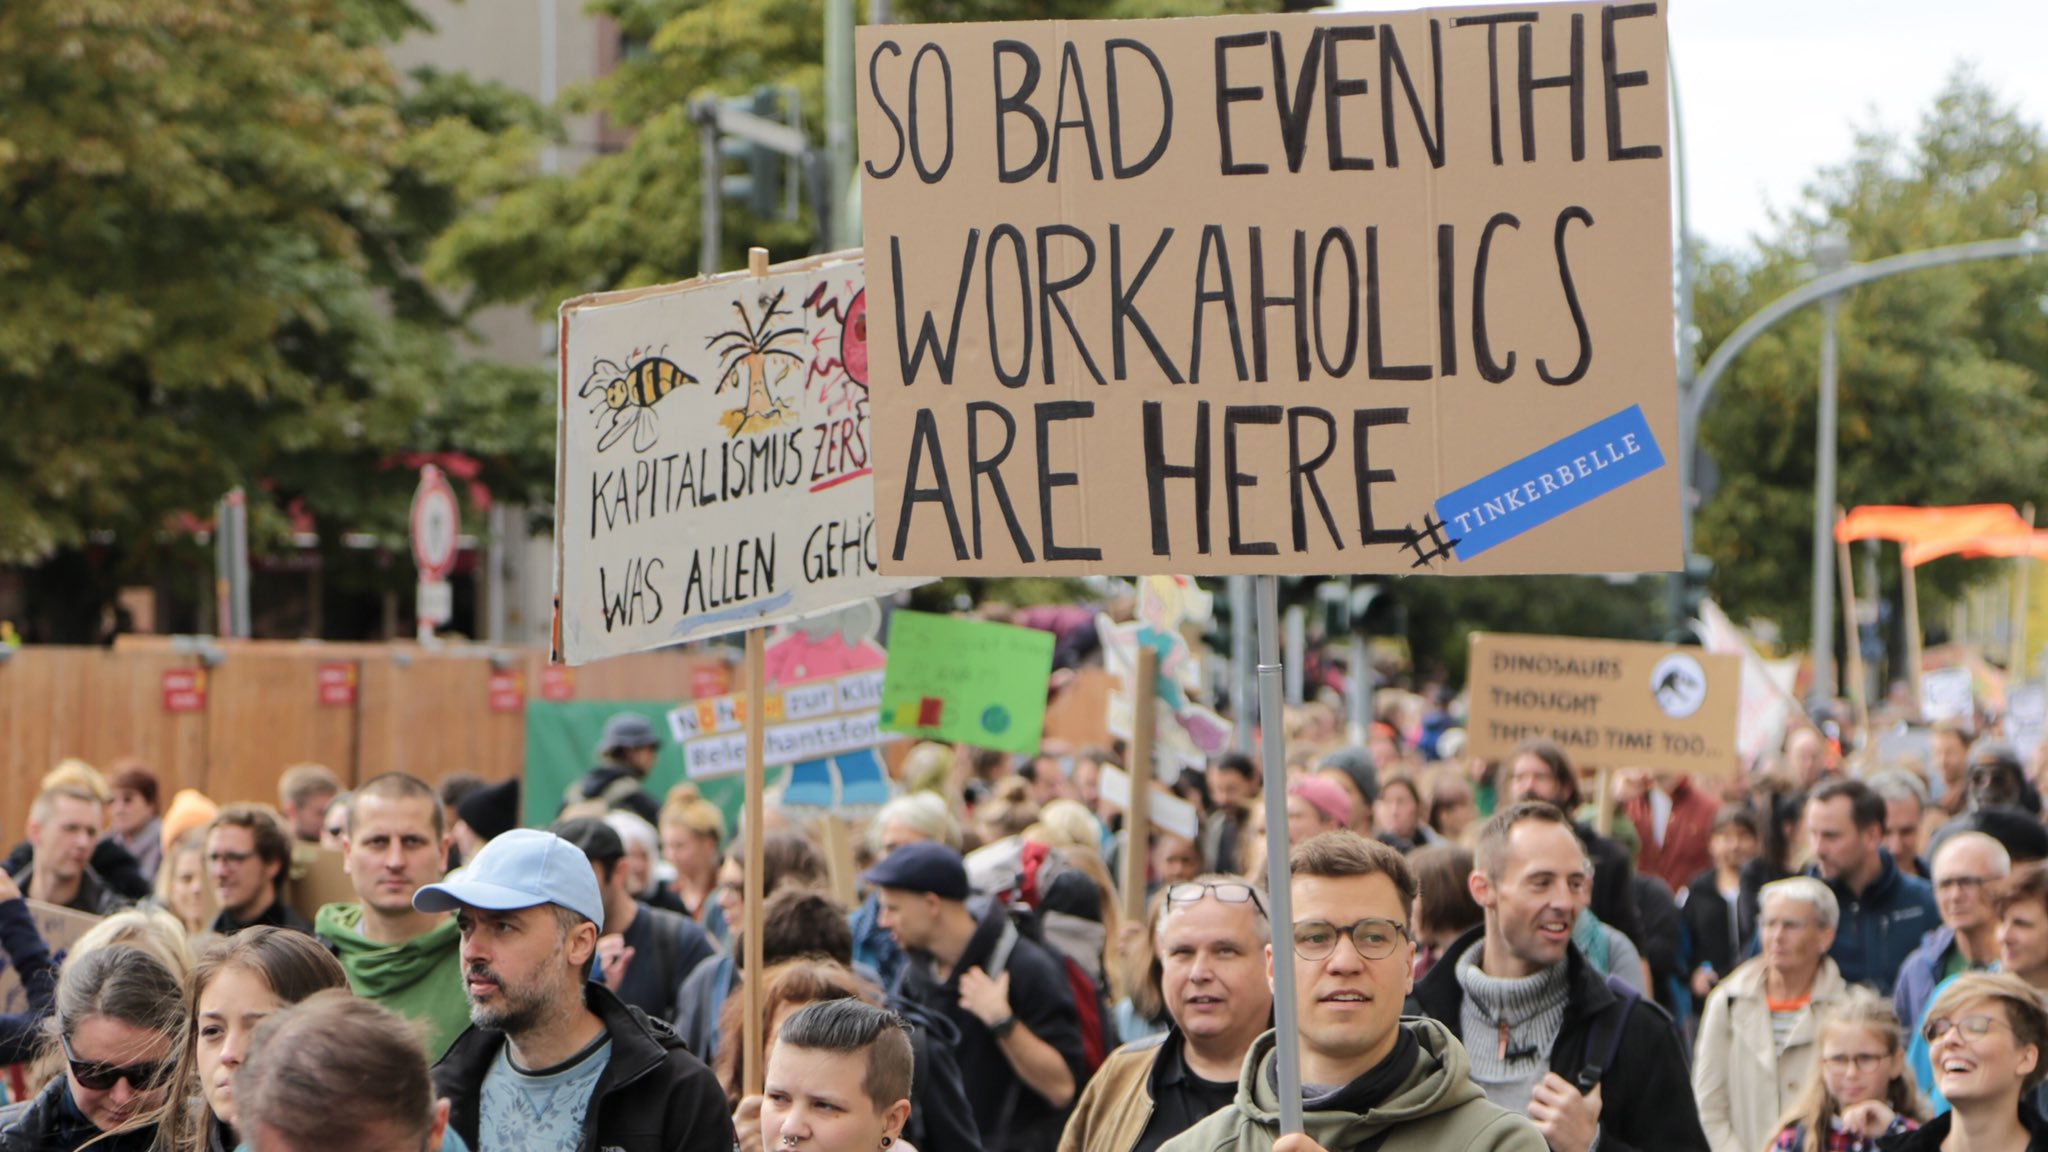 So bad even the workaholics are here. // Global Climate Strike. Bild: copy WWF Deutschland